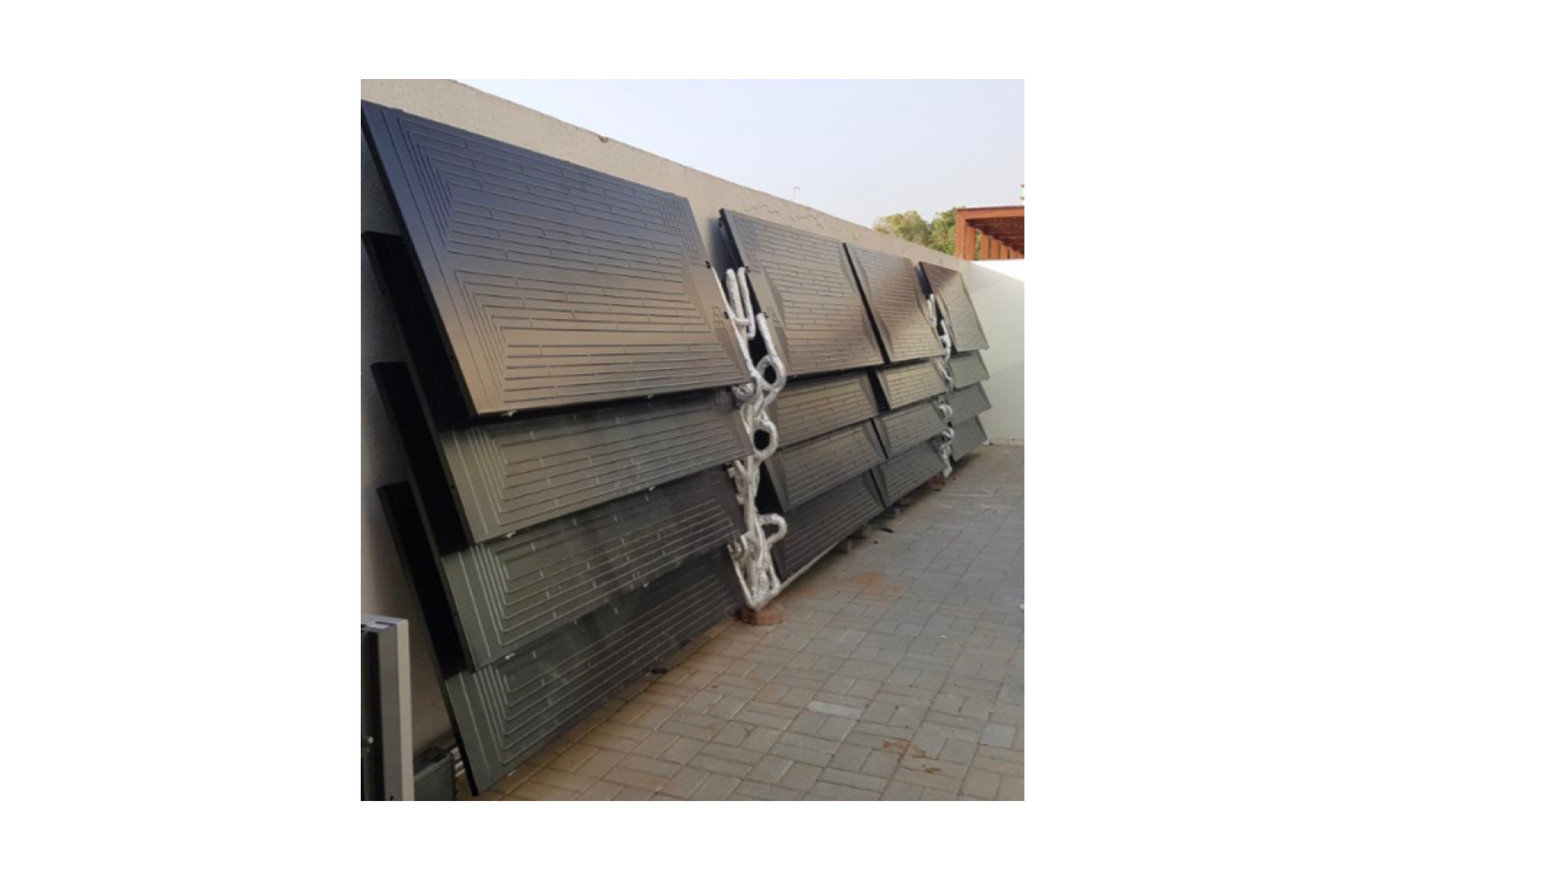 Energie SHW: Commercial application (stacked on roof)